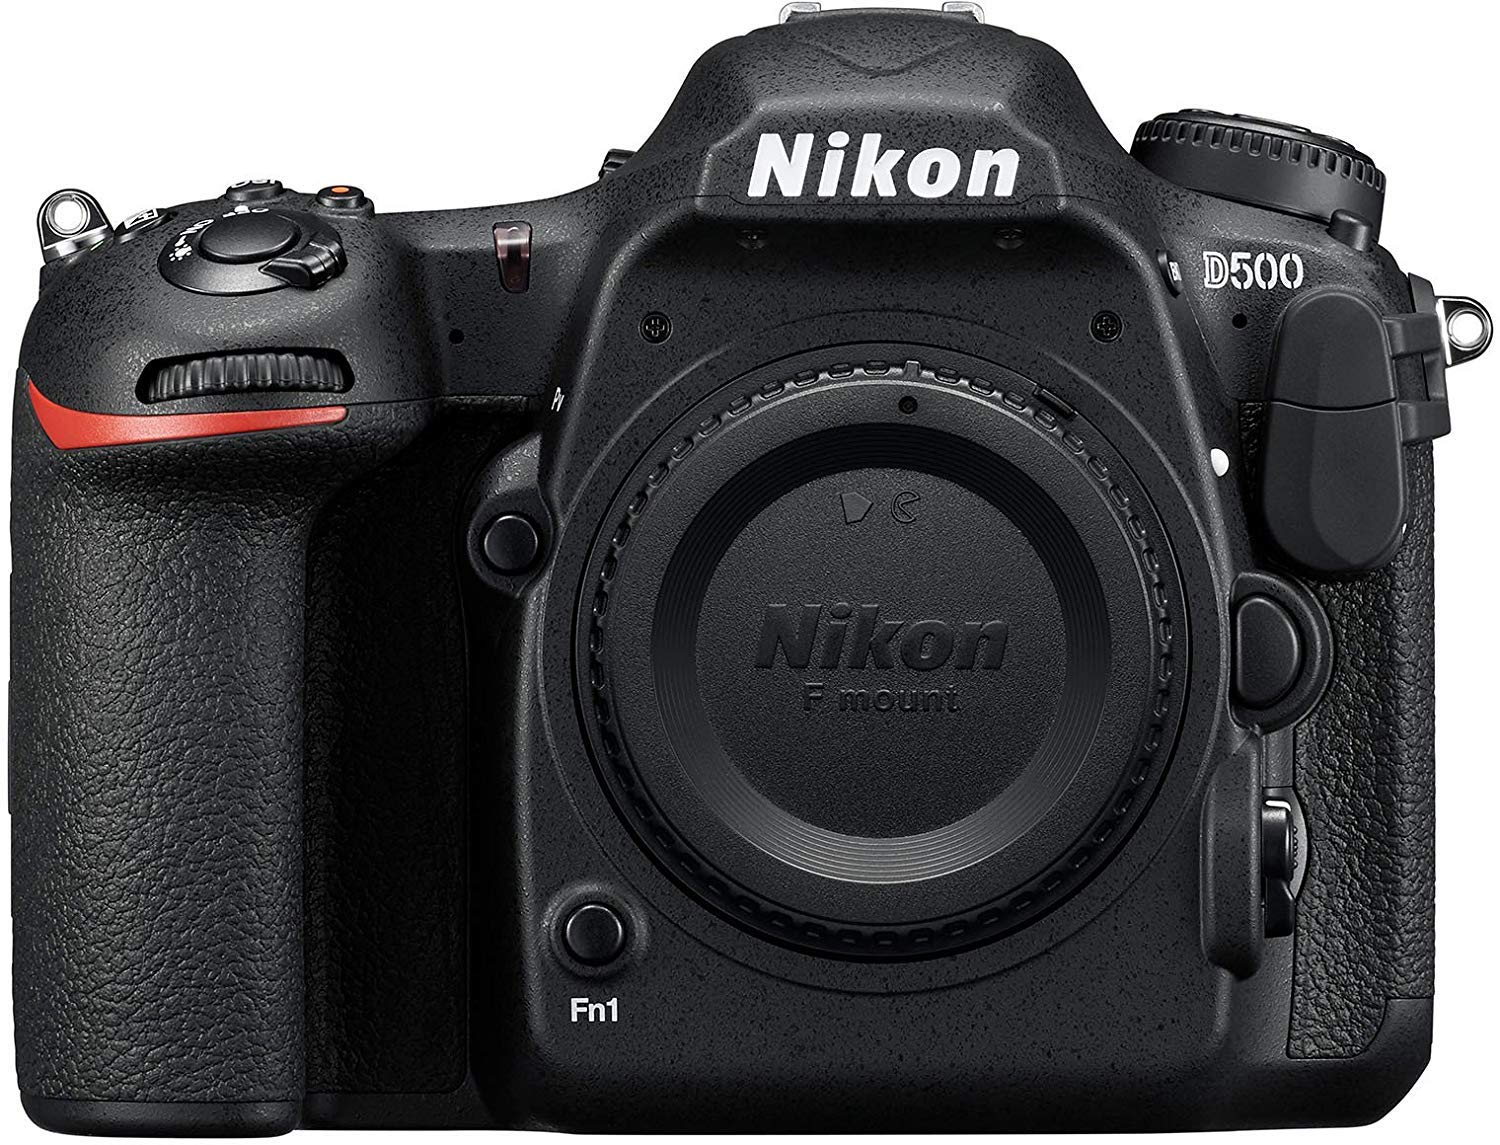 Nikon D500 Body Only - 20.9 Mega